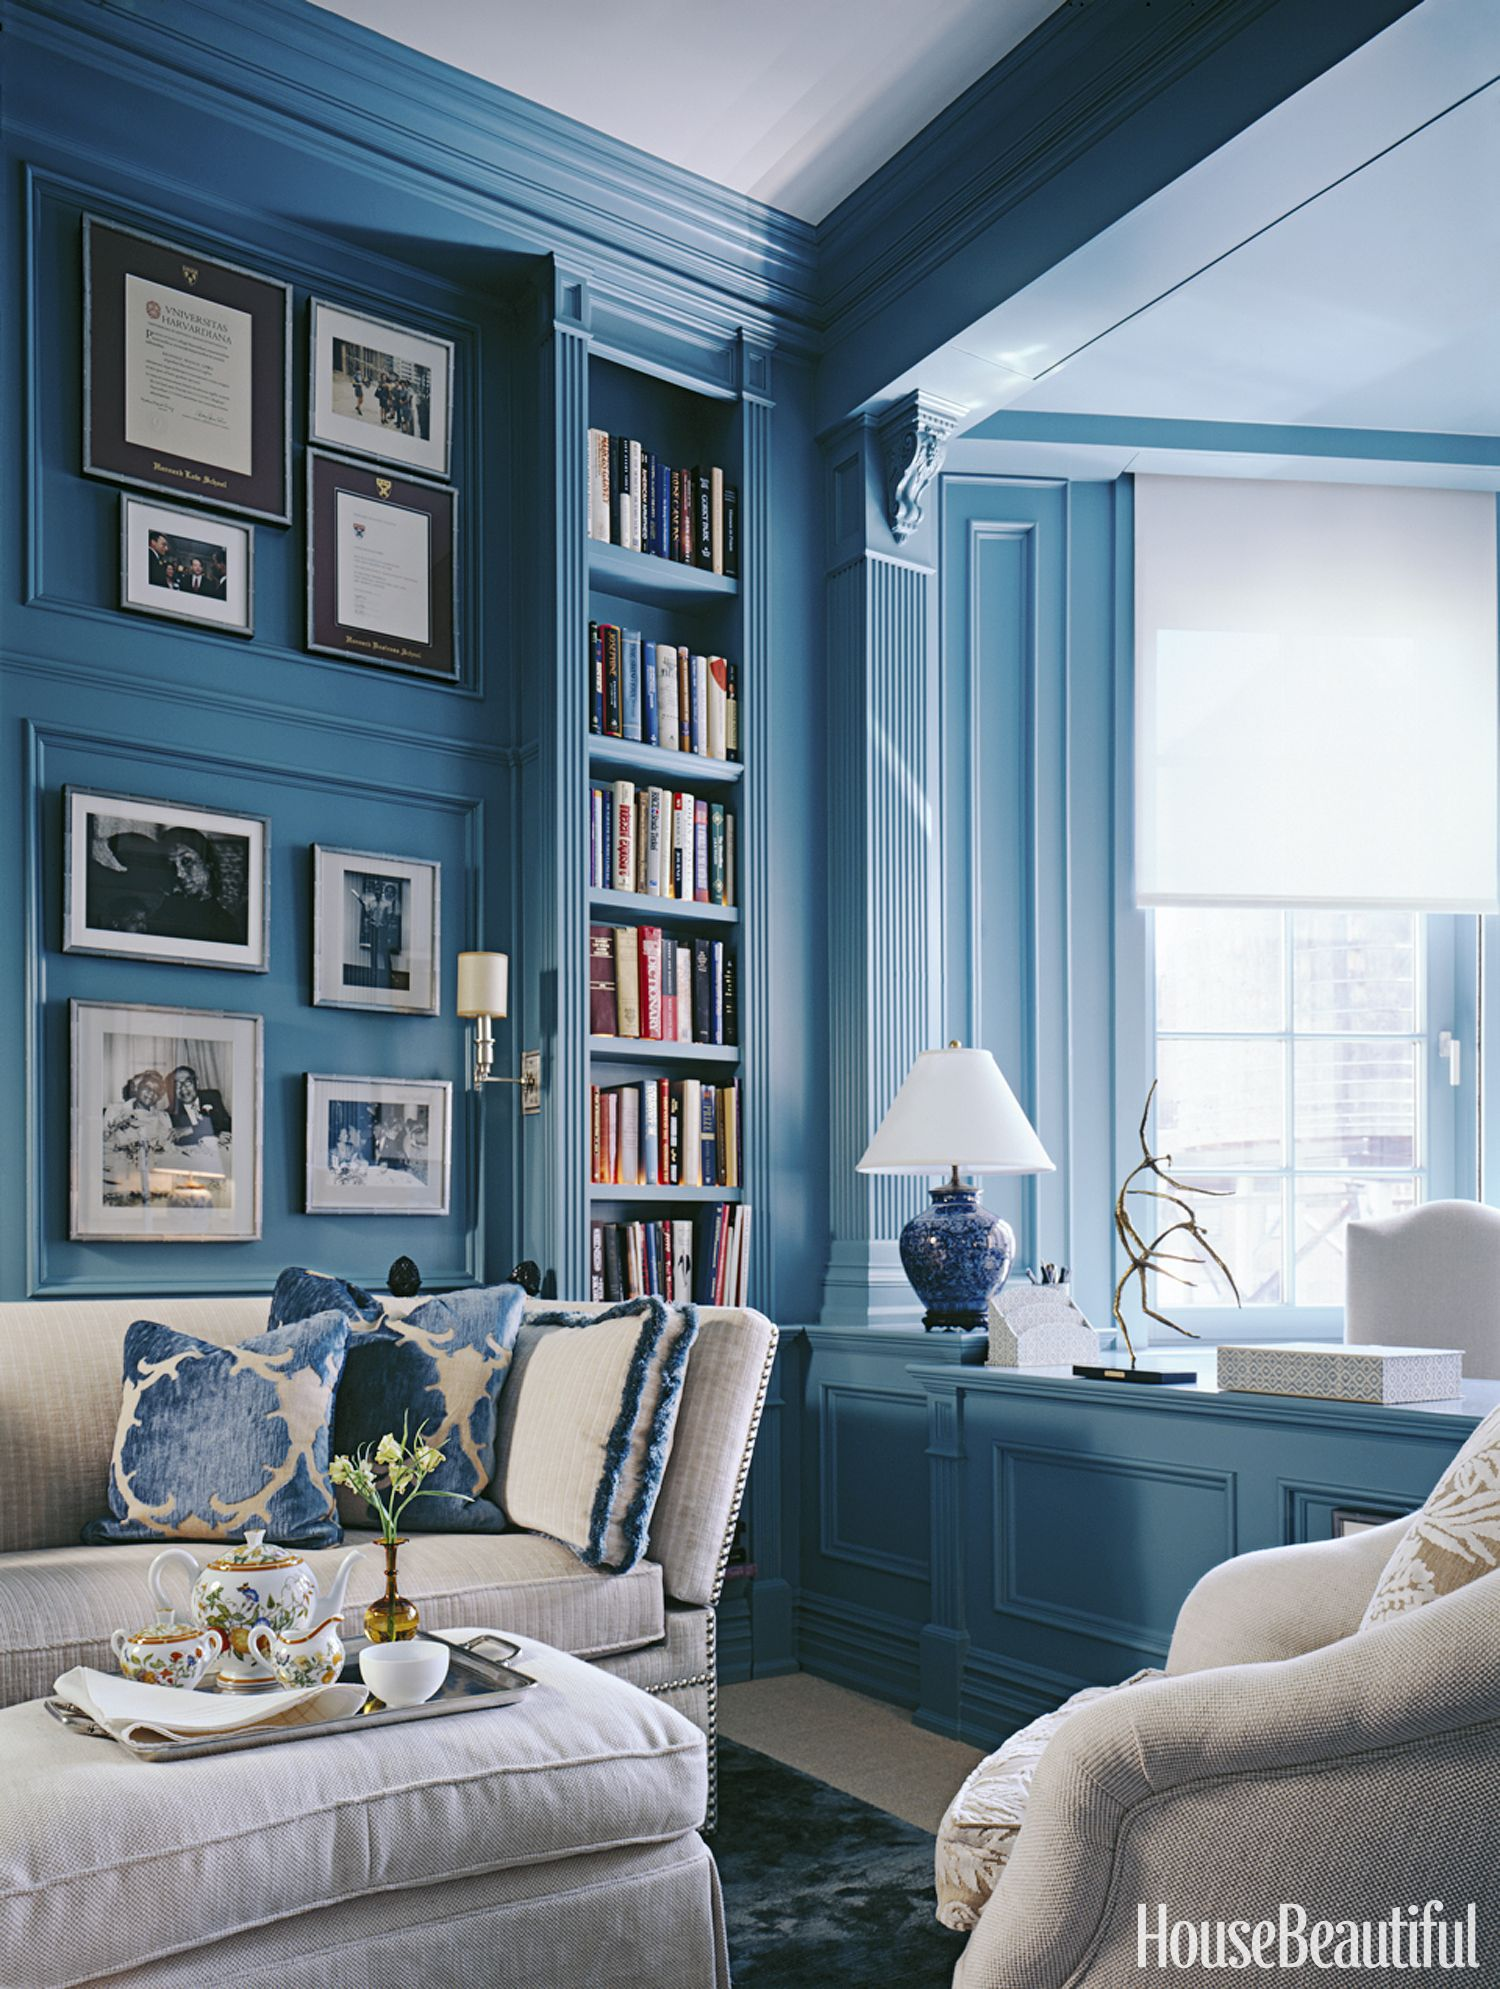 20+ Best Wall Art Ideas for Every Room - Cool Wall Decor and Prints